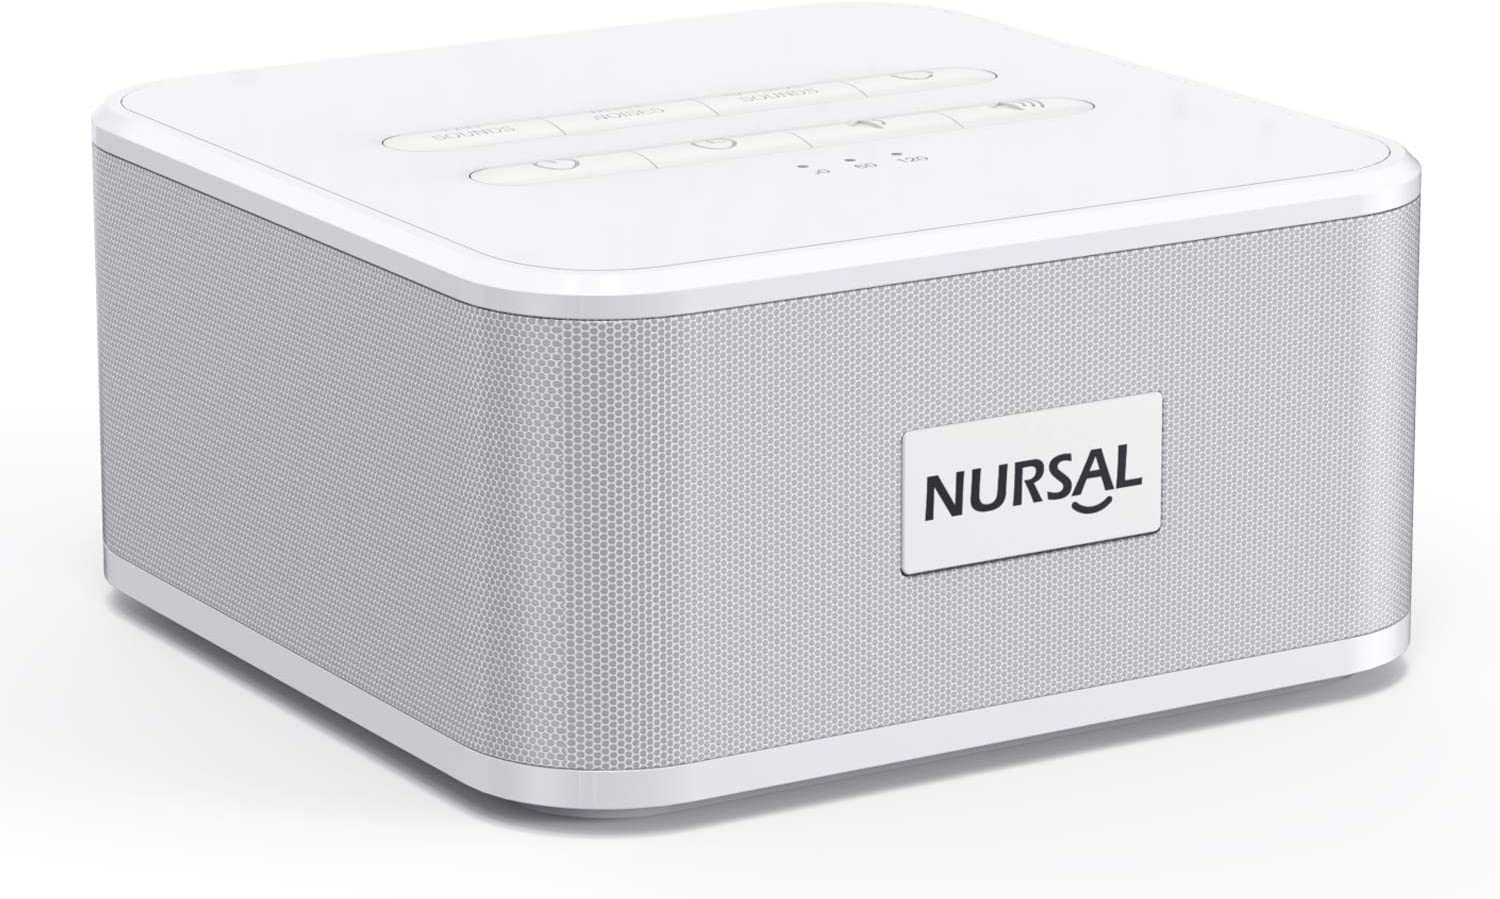 NURSAL White Noise Sound Machine Portable Sleep Therapy with 24 Relaxing Nature Sounds for Baby & Adults, Home, Office, Travel, Auto-Off Timer & Memory Function, Father's Day Gift